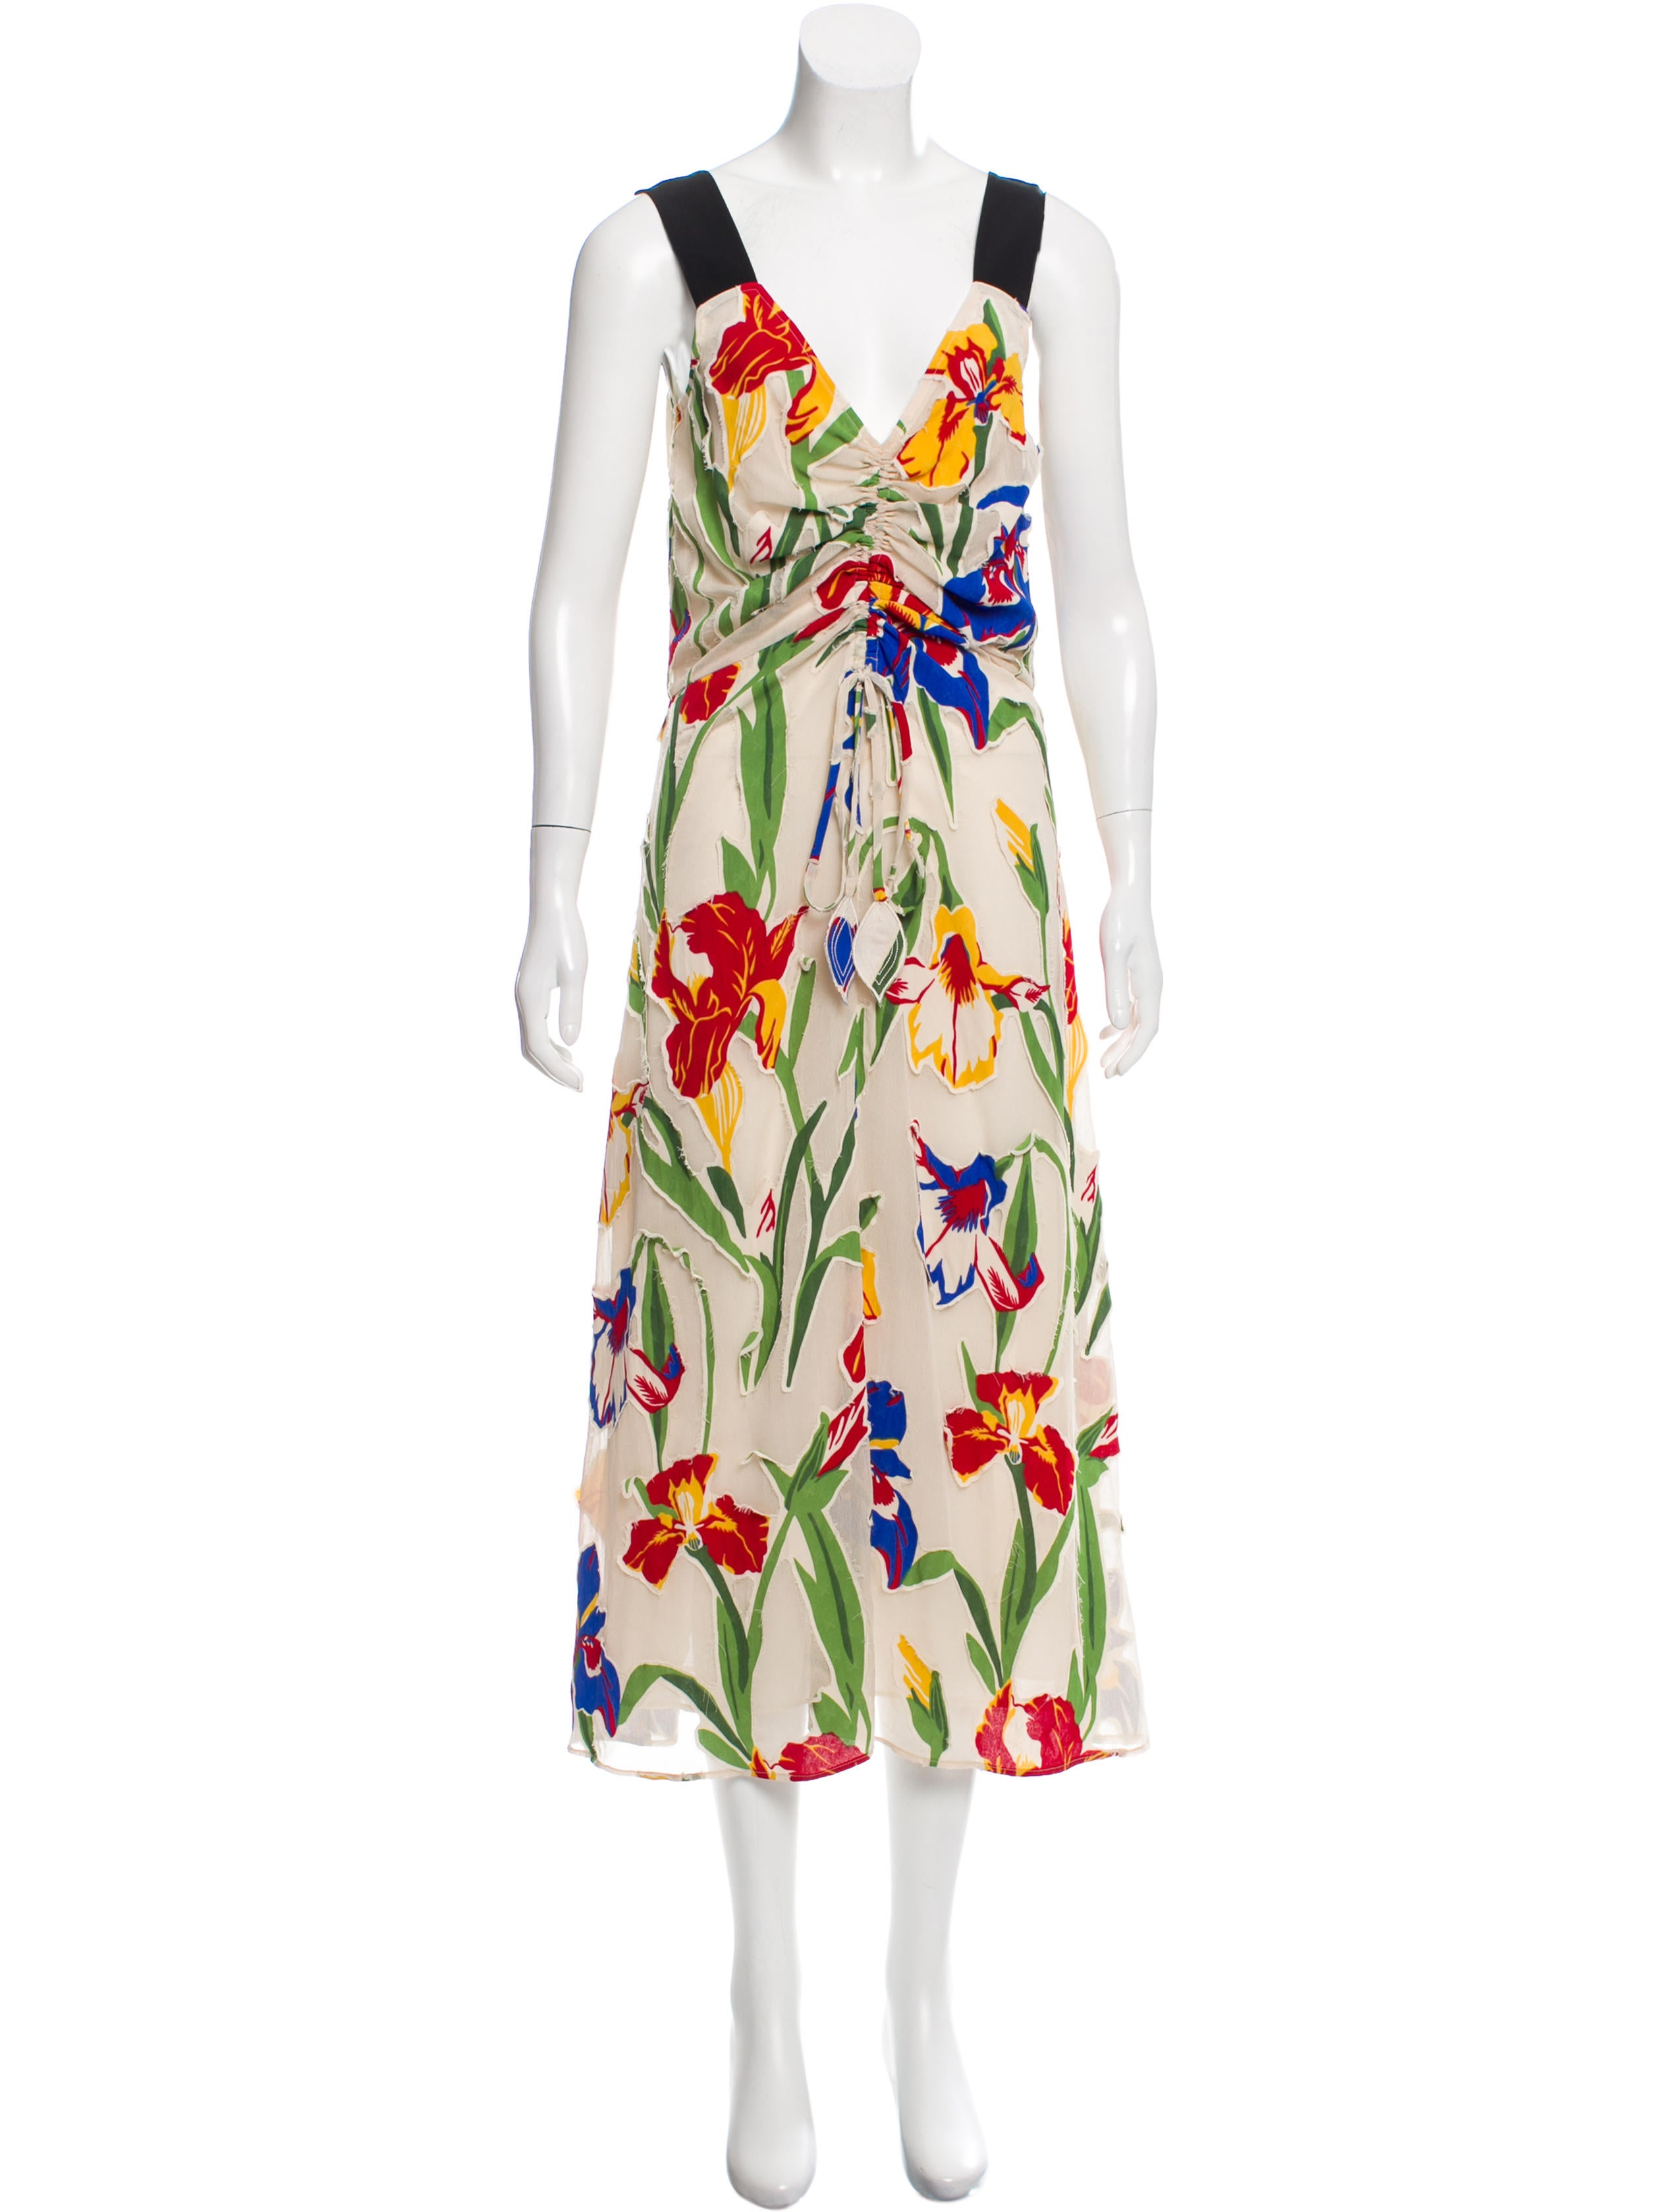 e1307a7a36 Tory Burch Clarissa Silk-Trimmed Dress w/ Tags - Clothing - WTO183038 | The  RealReal